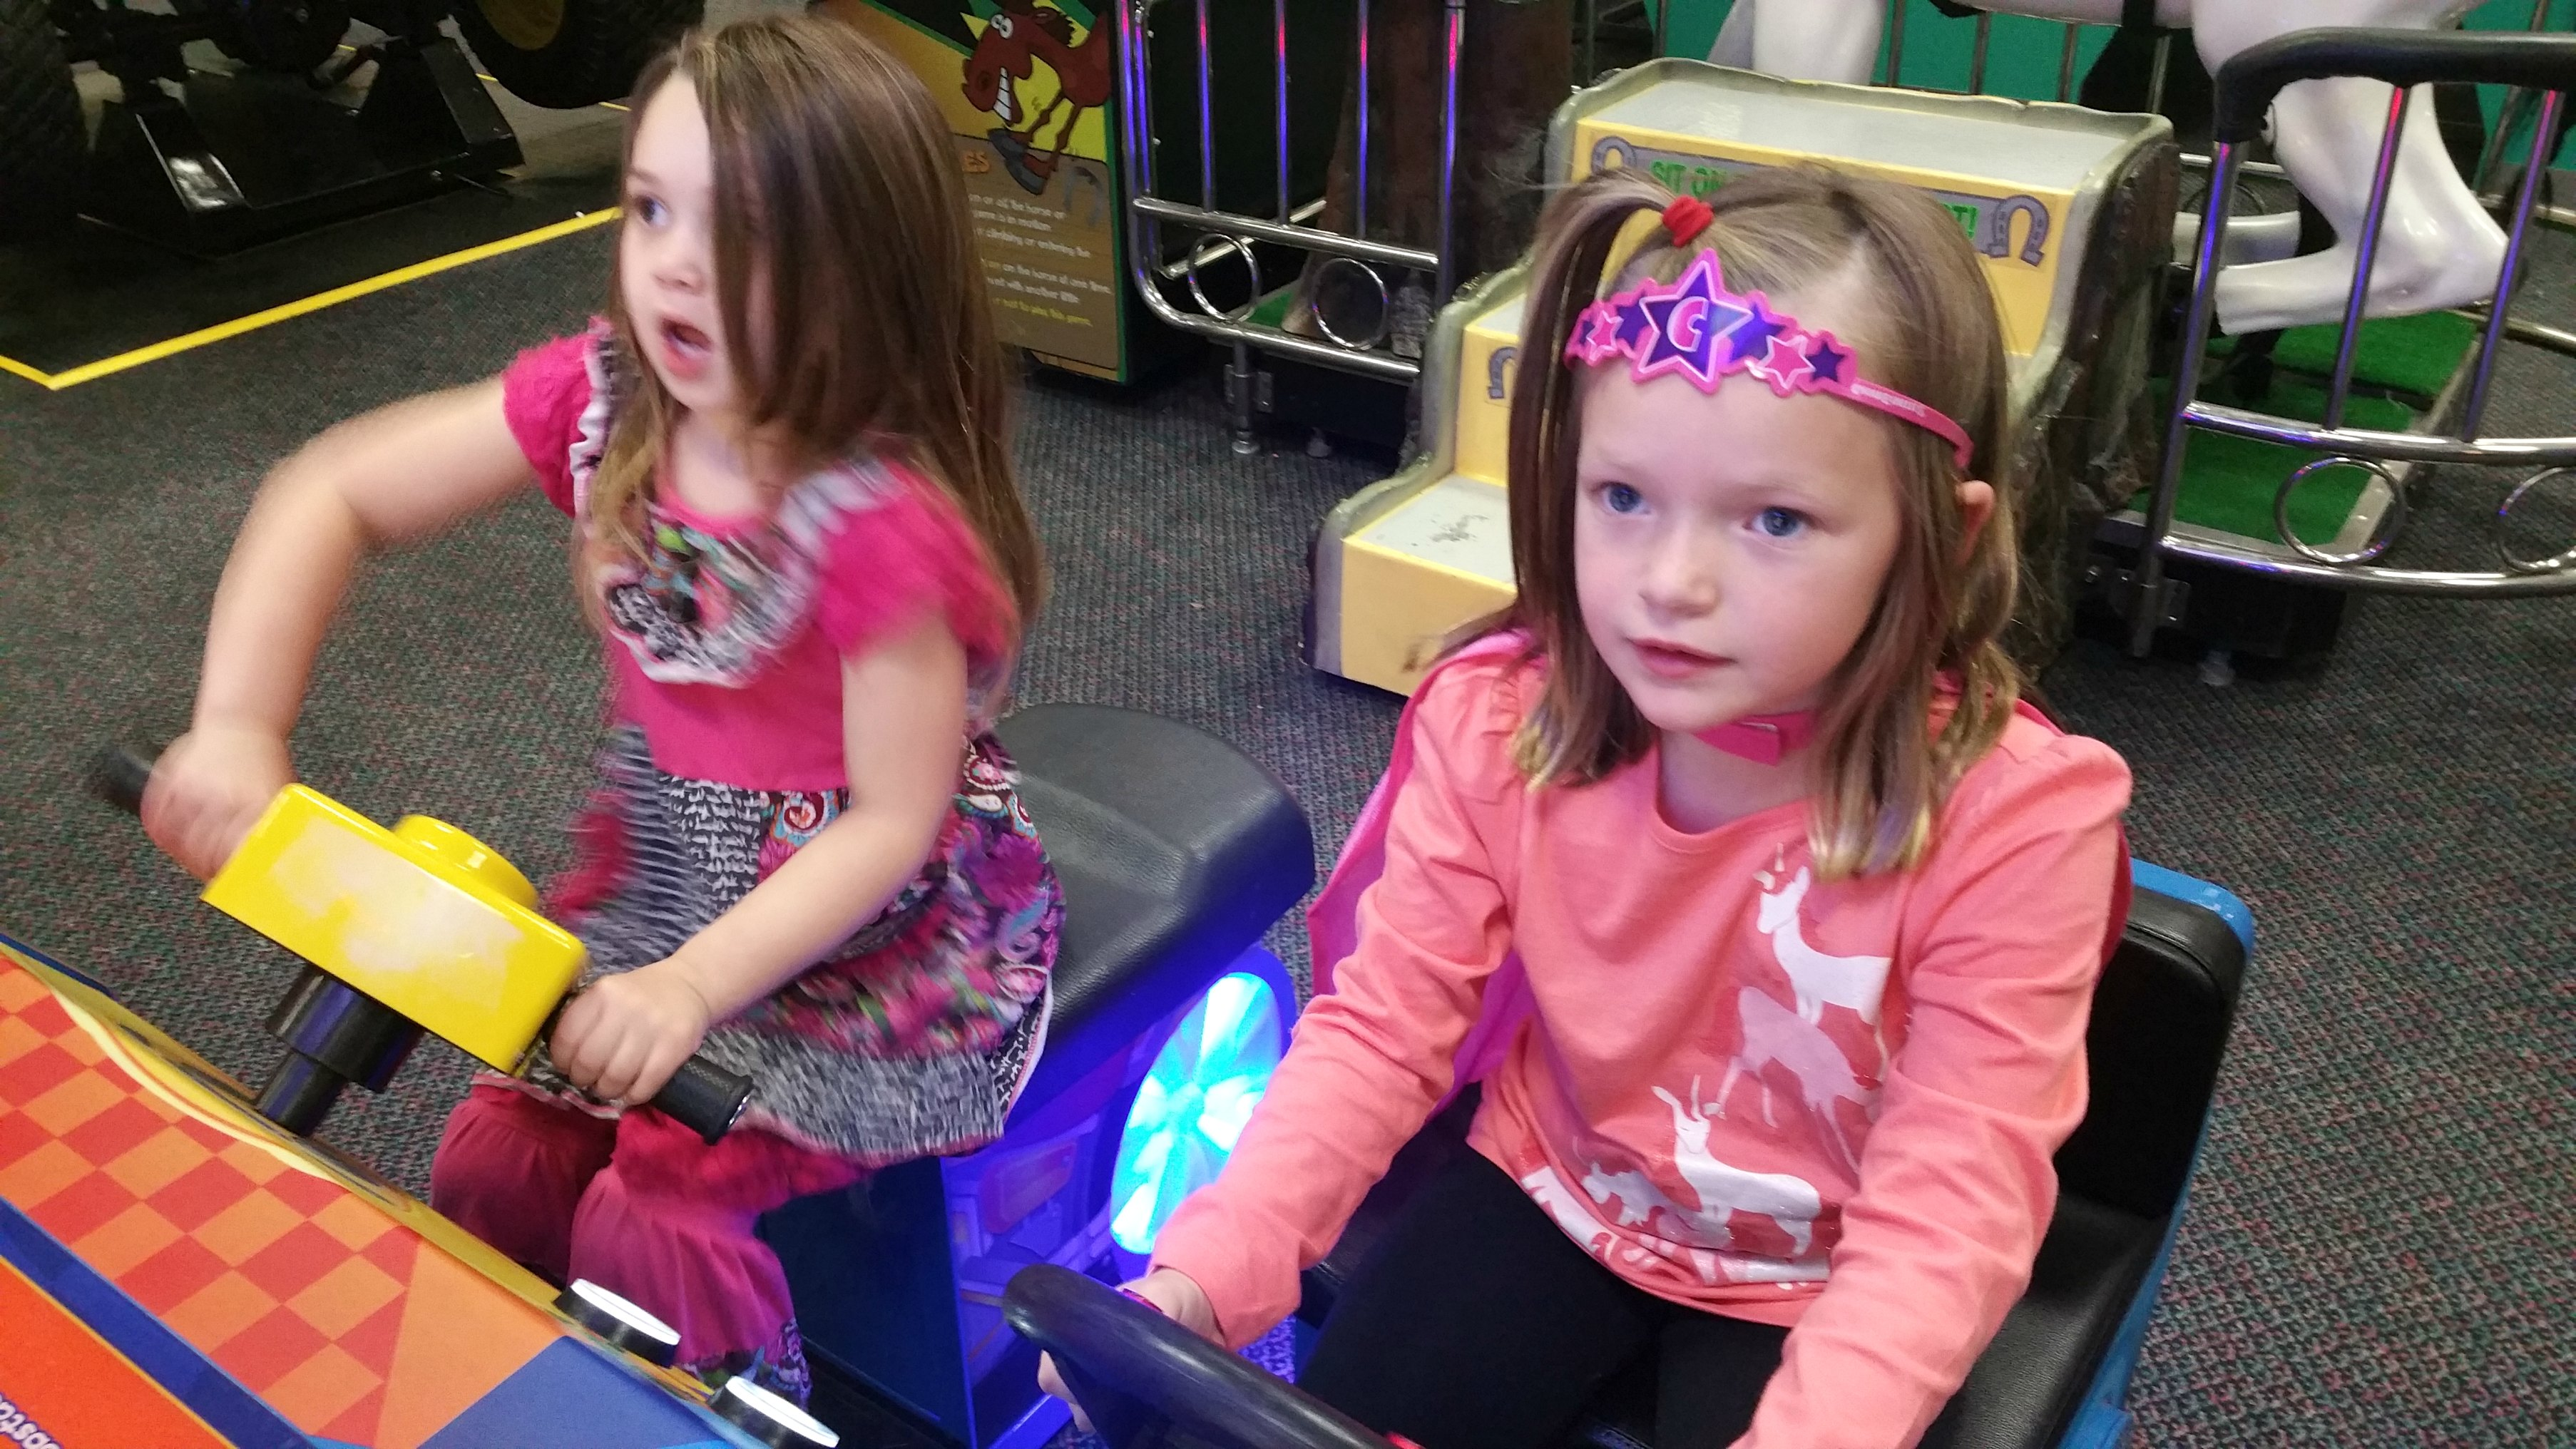 playing at chuckecheese